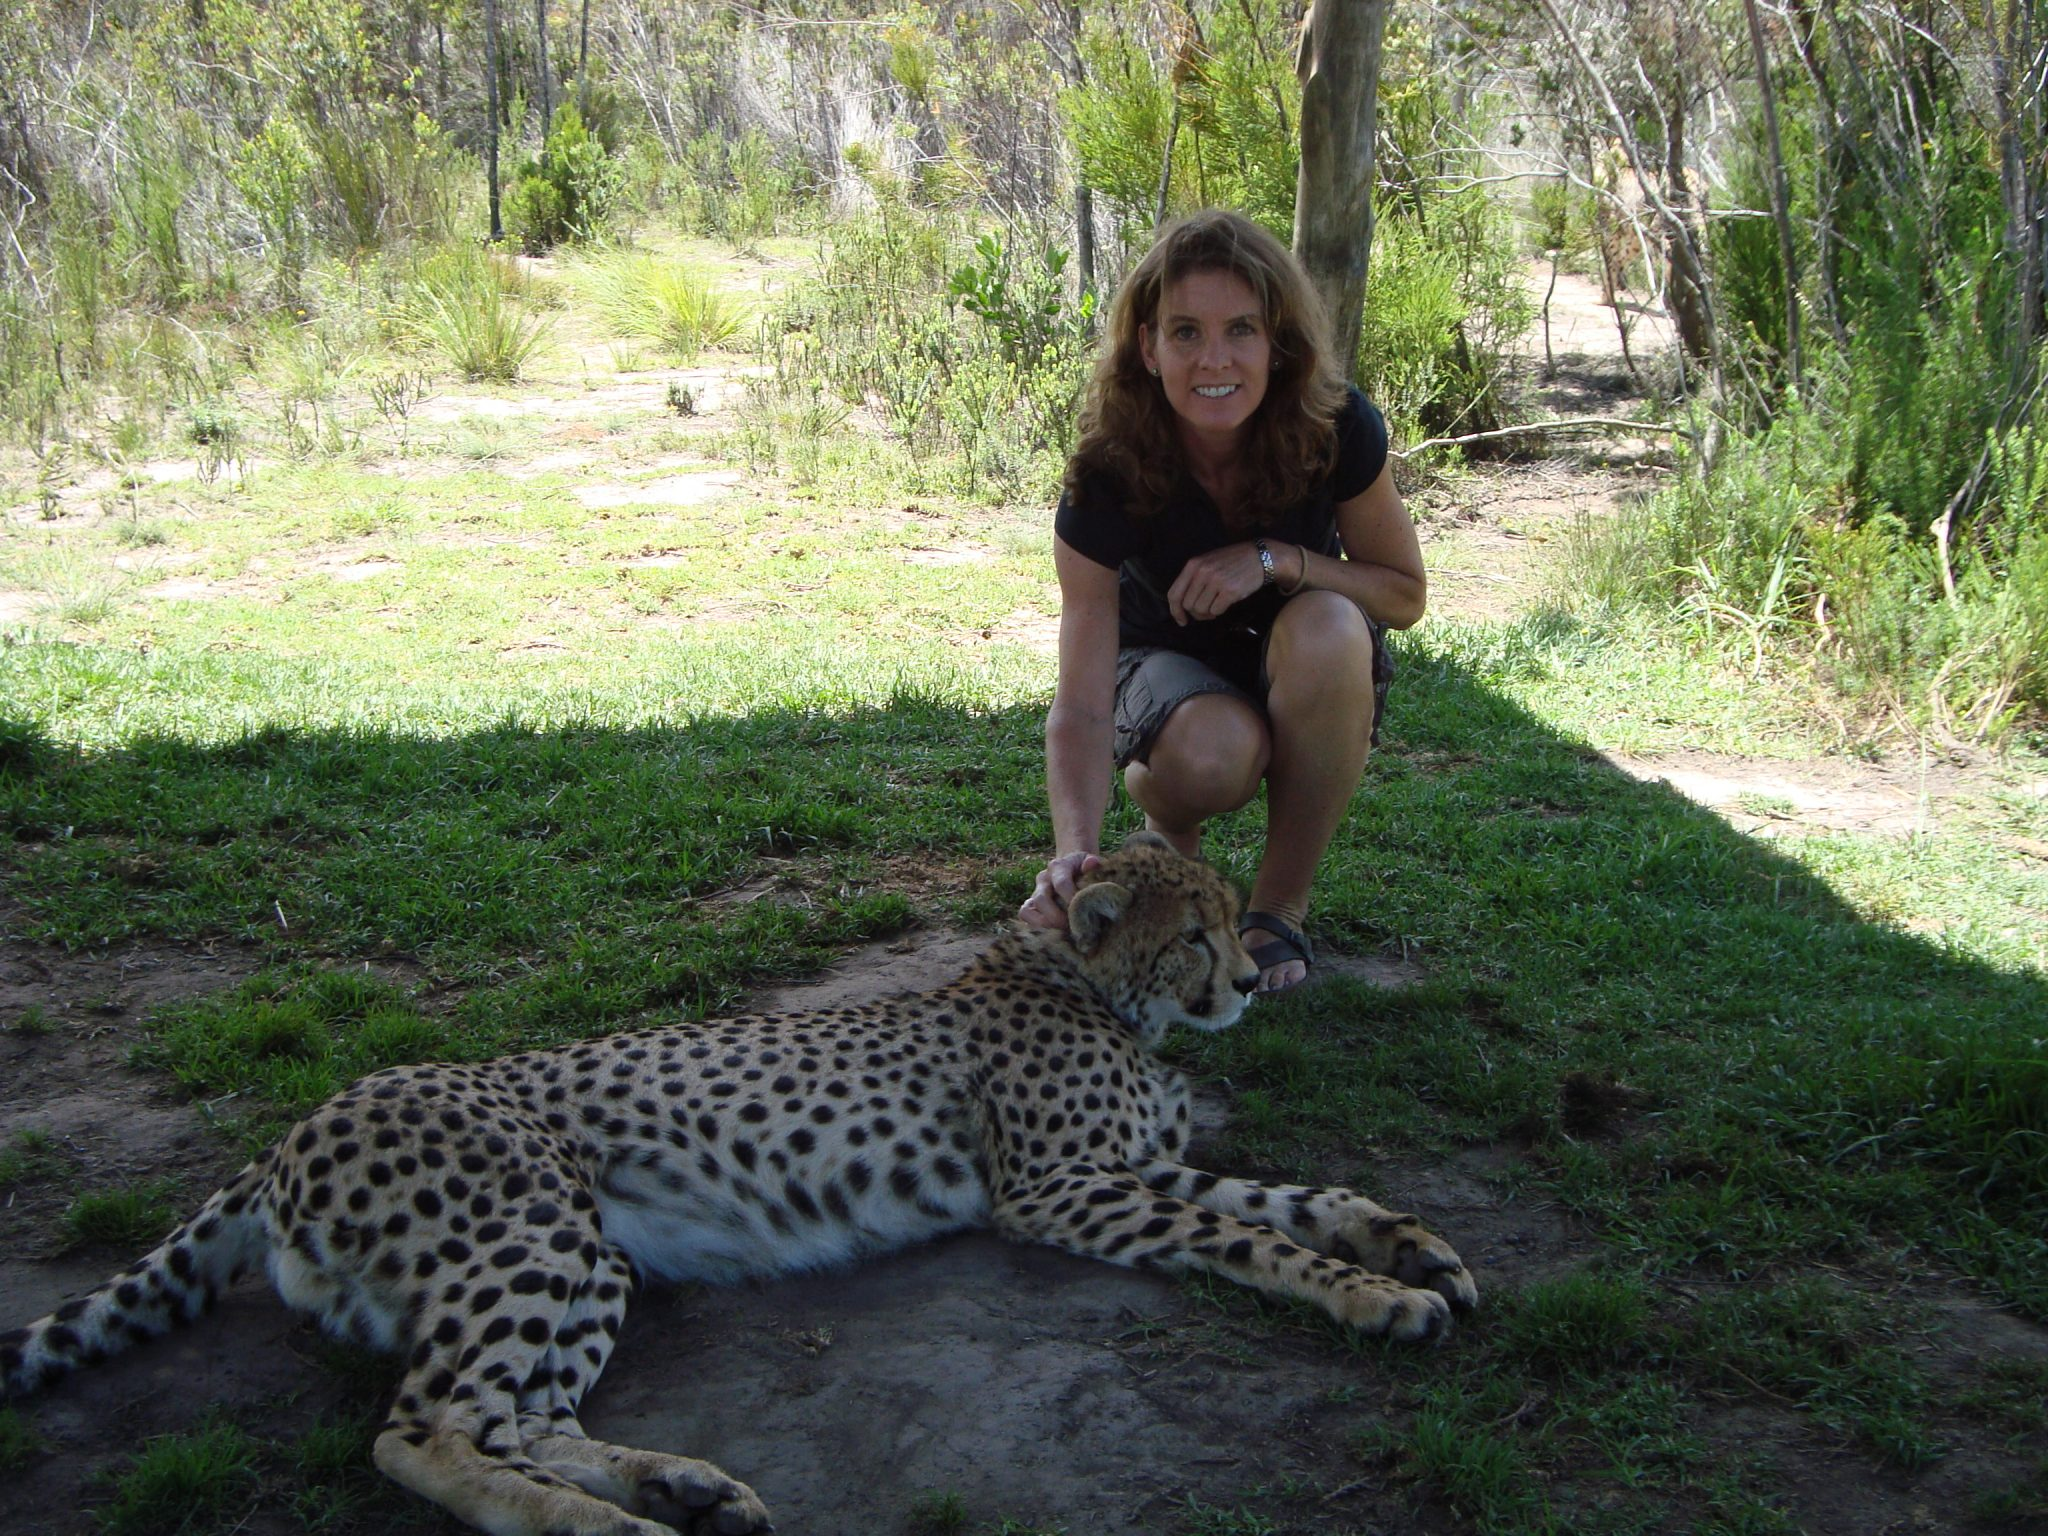 Sue Picken – Petting a Cheetah in SA